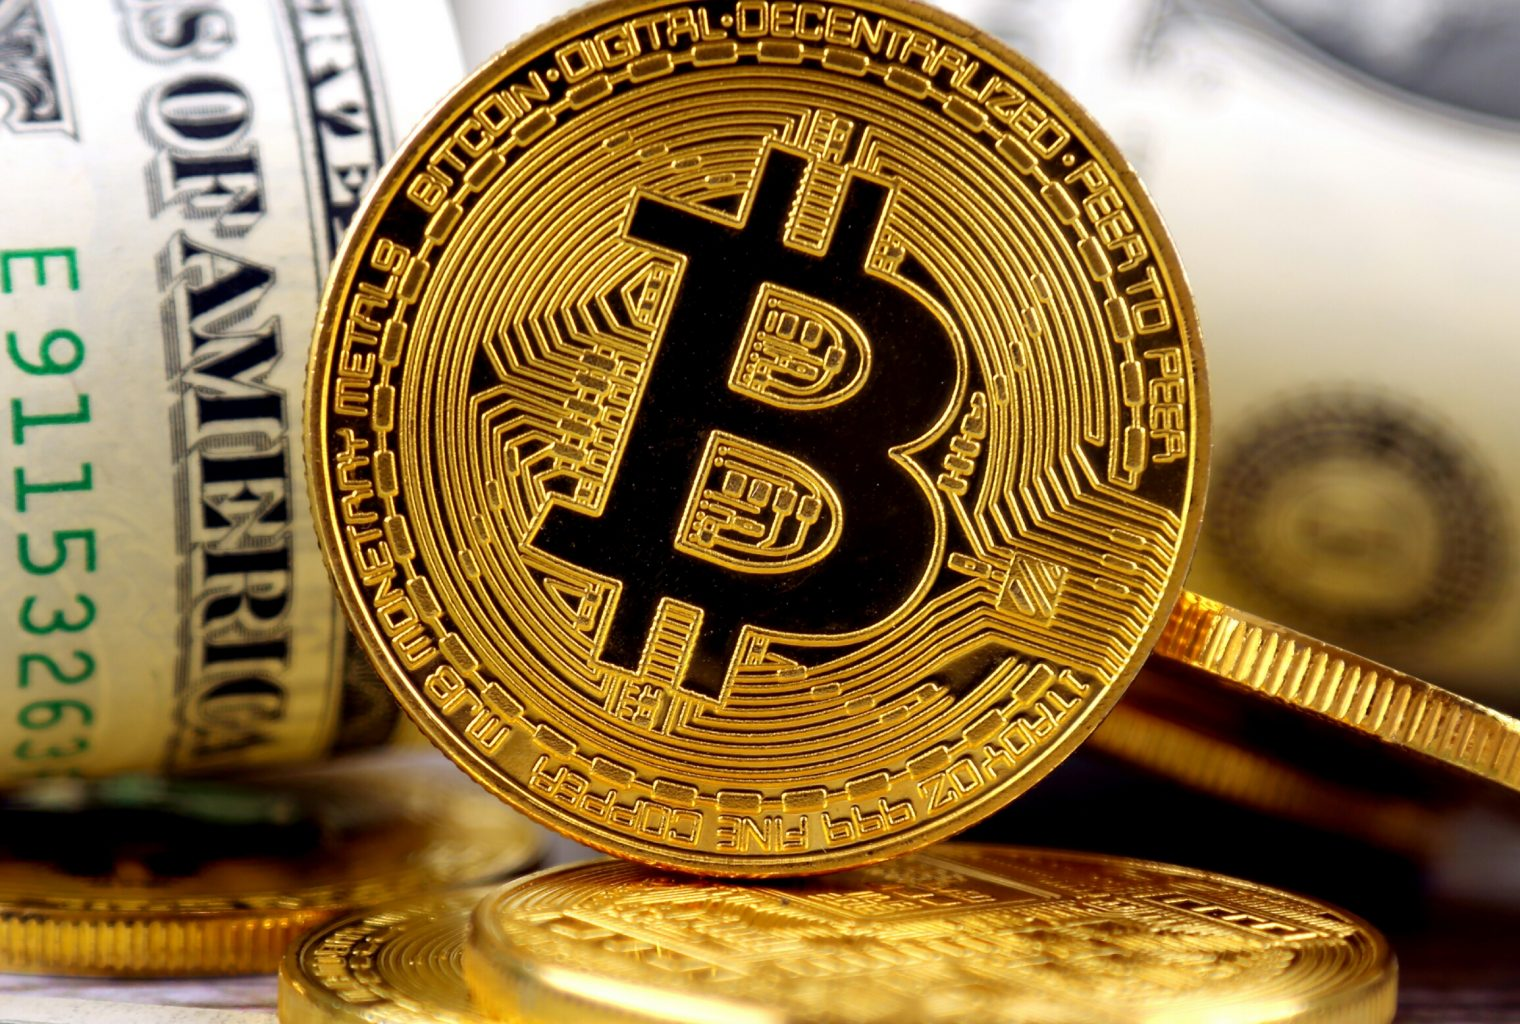 Why are BTC dangerous? The statement of the European regulator